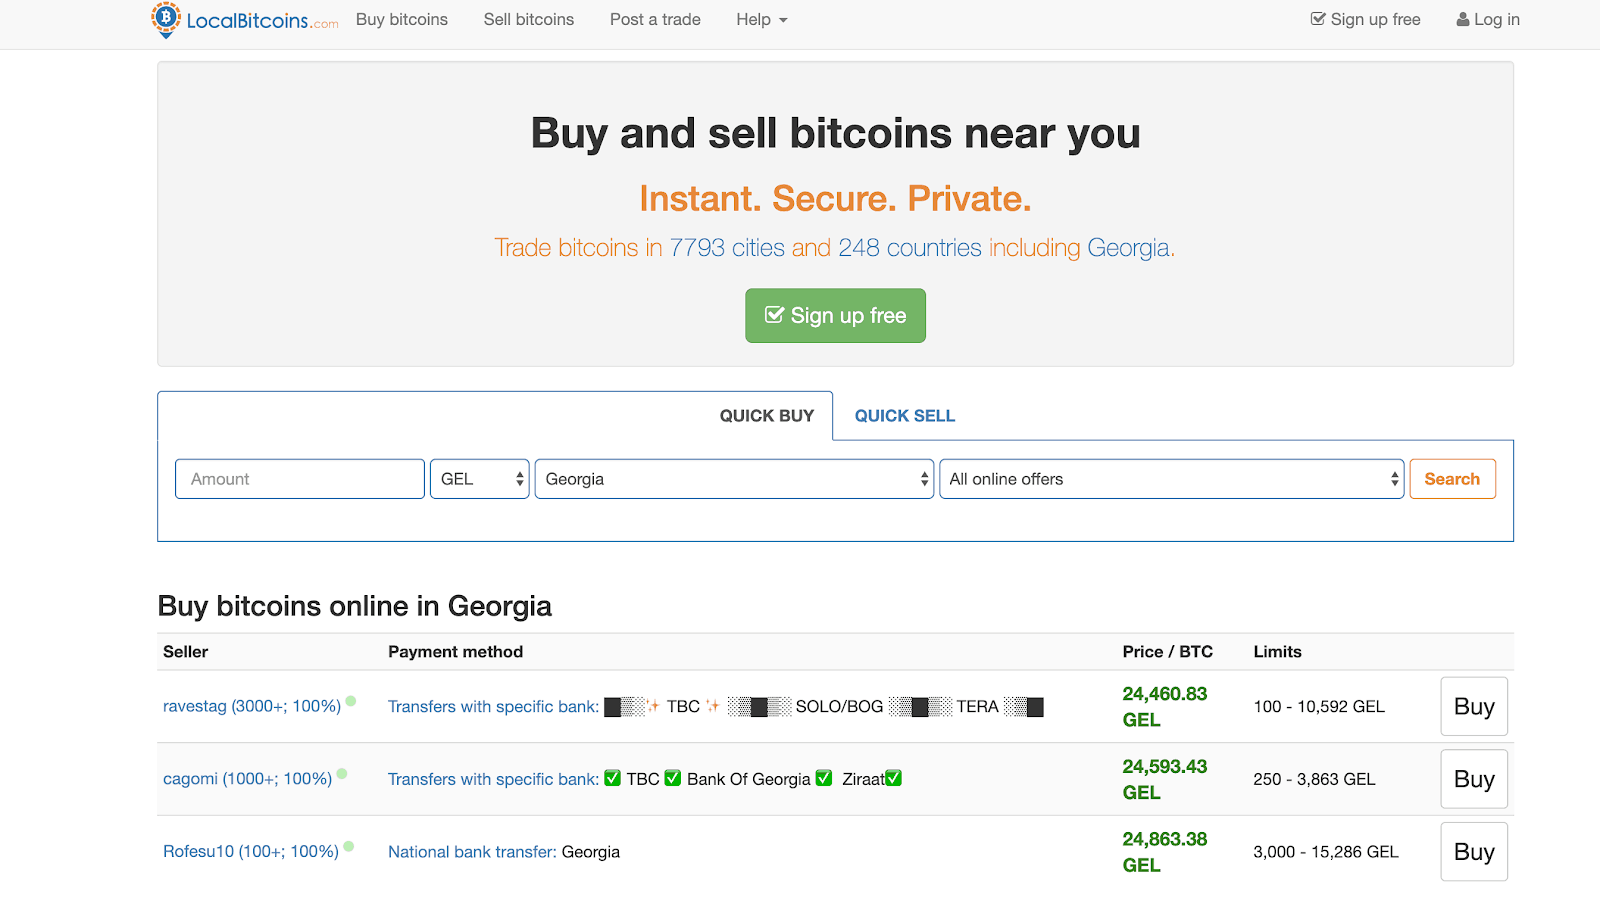 How To Cash Out Bitcoin - Simple Steps